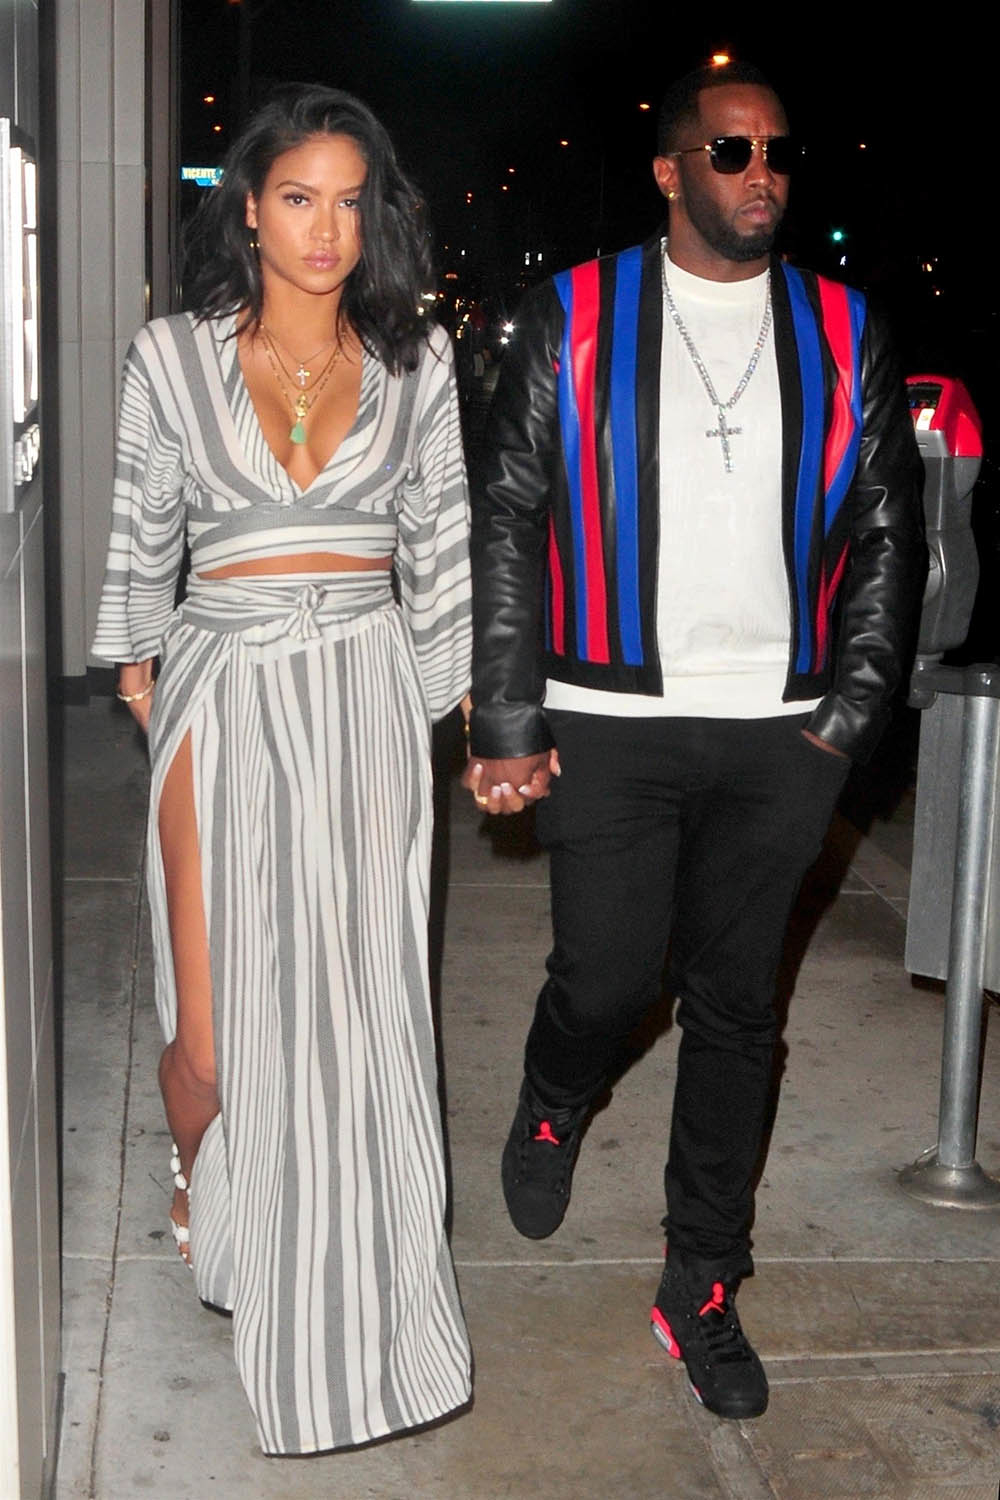 Sean Quot Puffy Quot Combs And Cassie Ventura At Catch La For